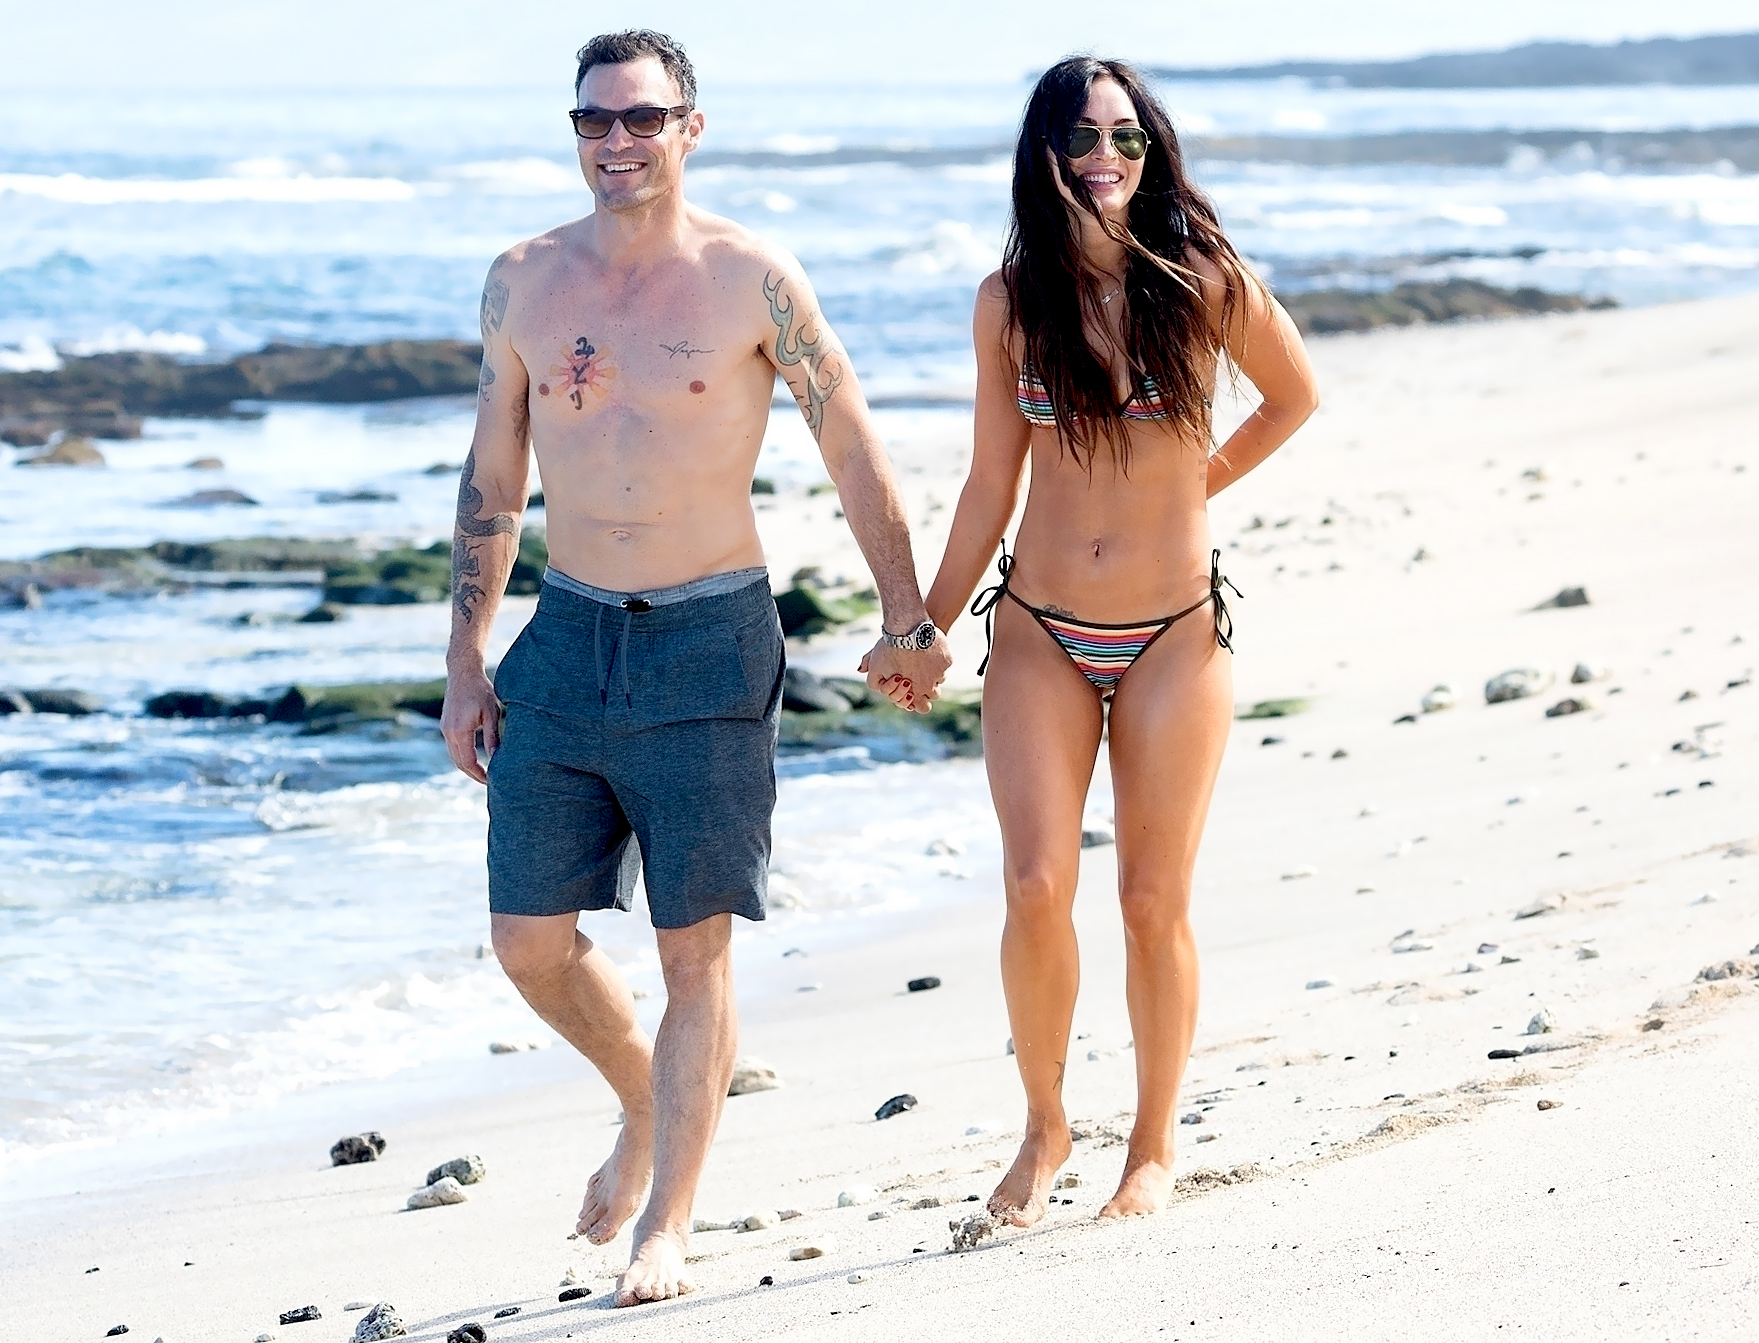 brian austin green, megan fox return to honeymoon getaway